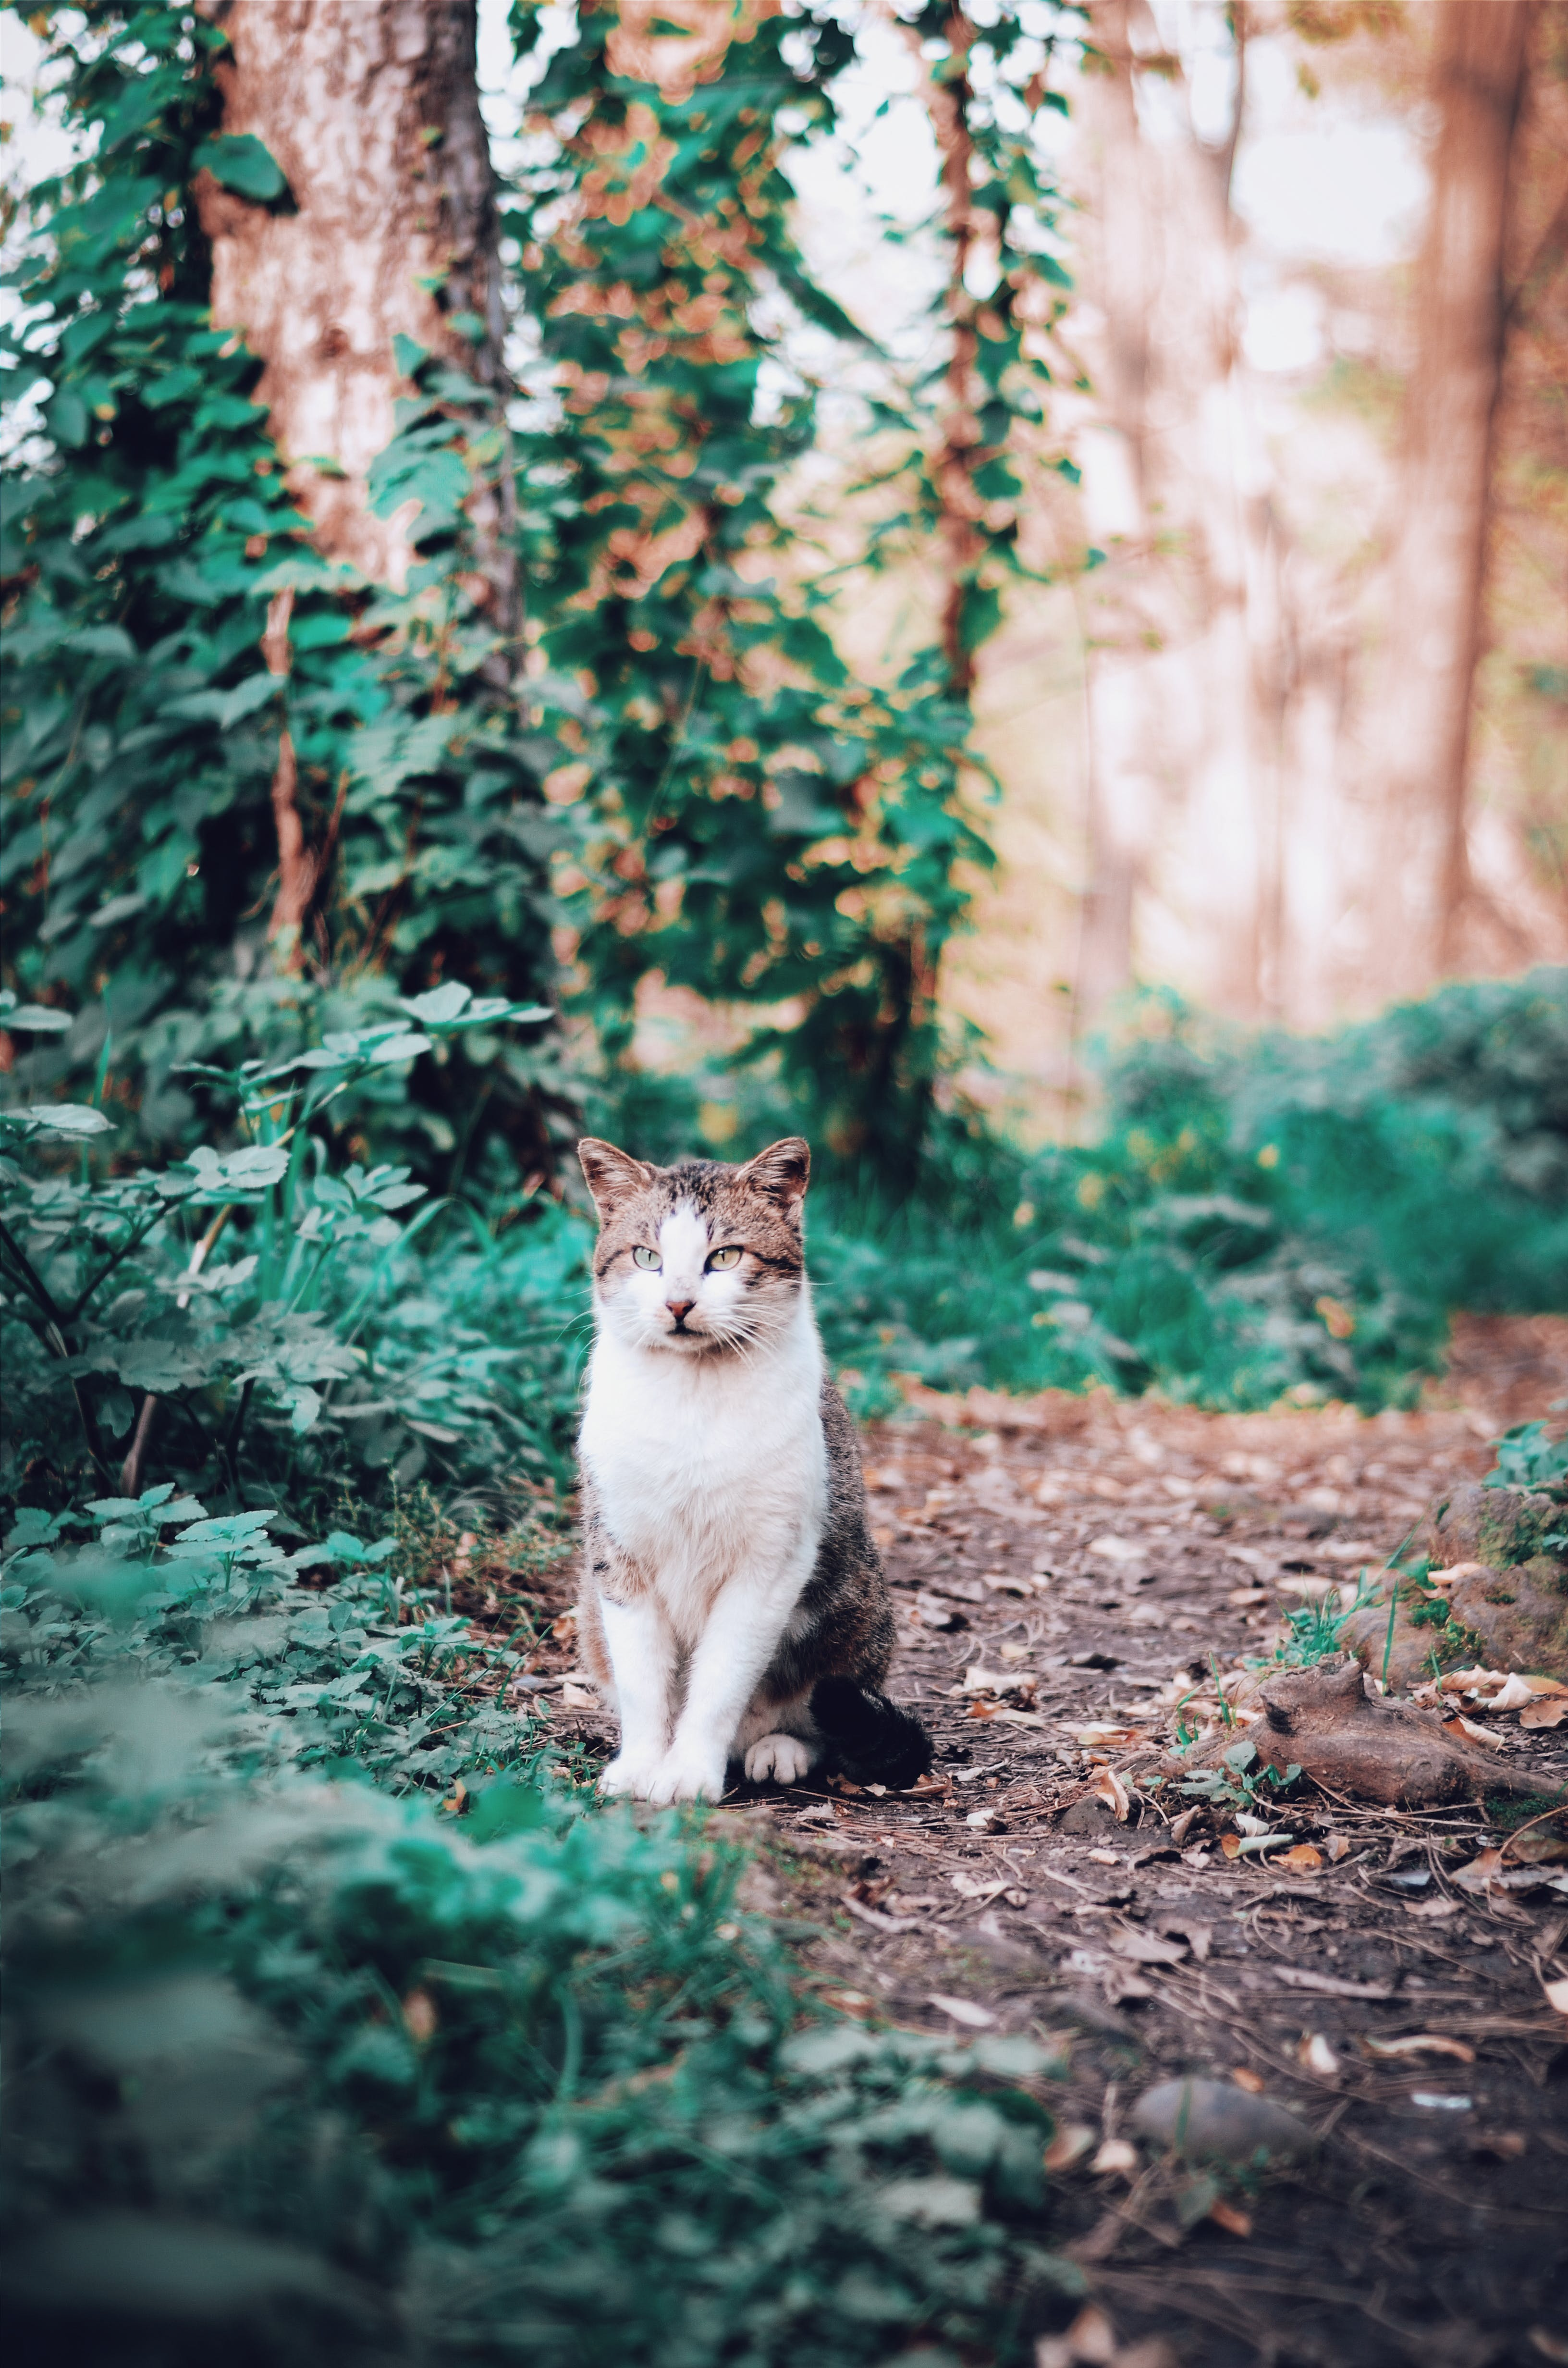 Photo of White and Brown Cat Sitting on The Ground